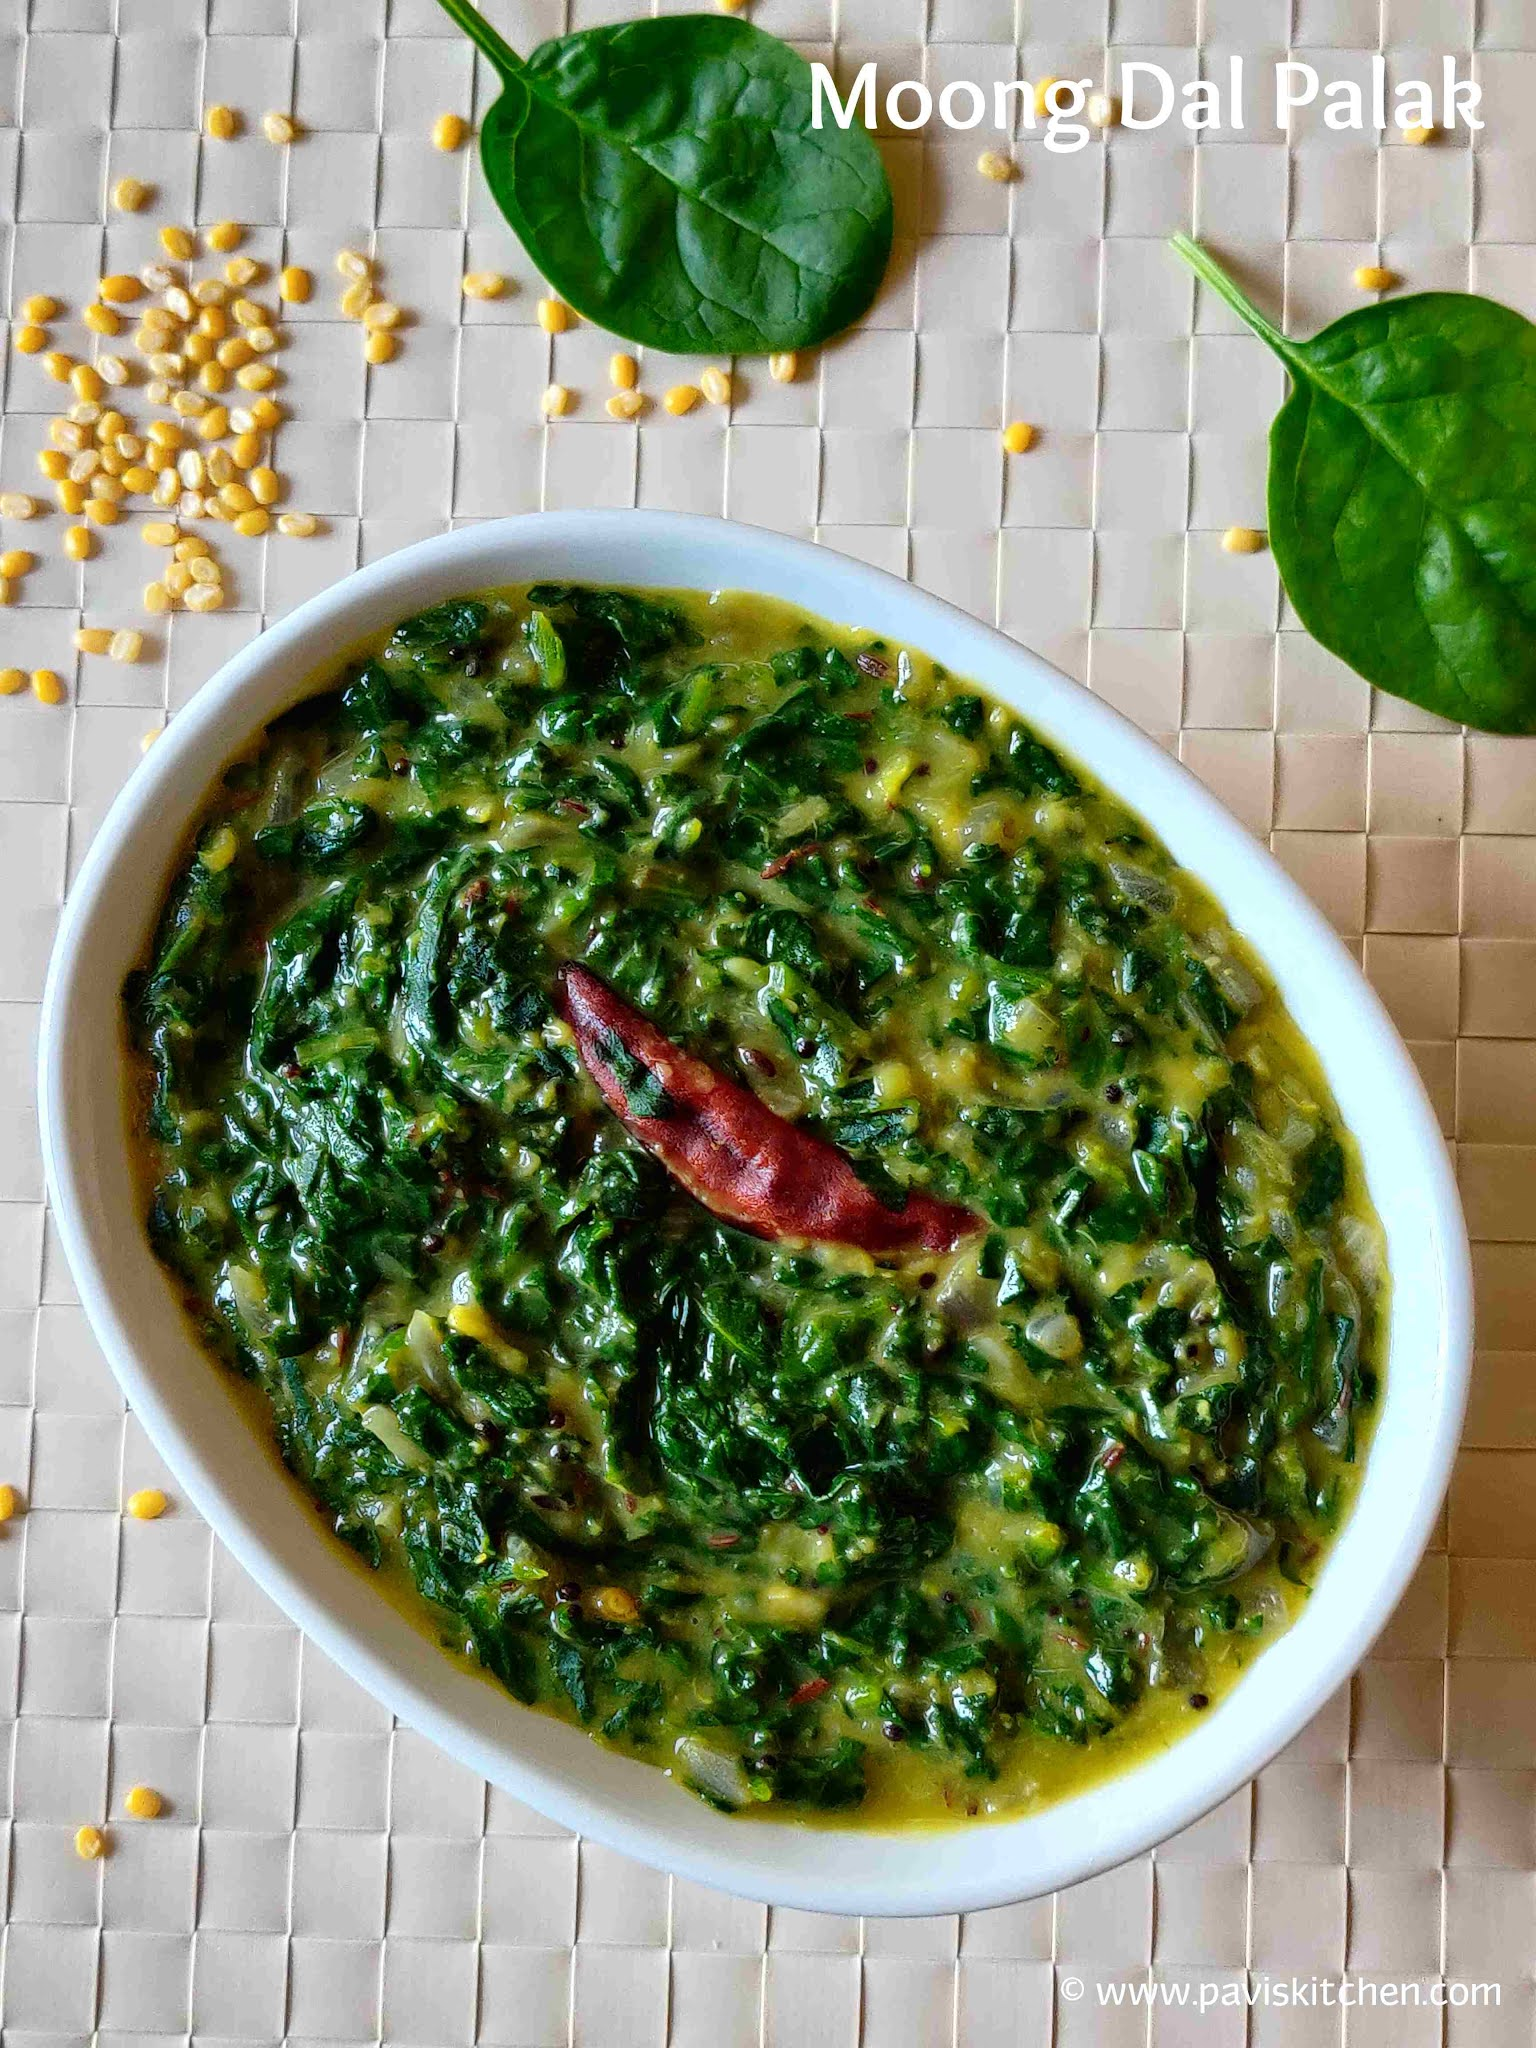 Moong Dal Palak Recipe | Spinach Dal | Palak Dal Curry